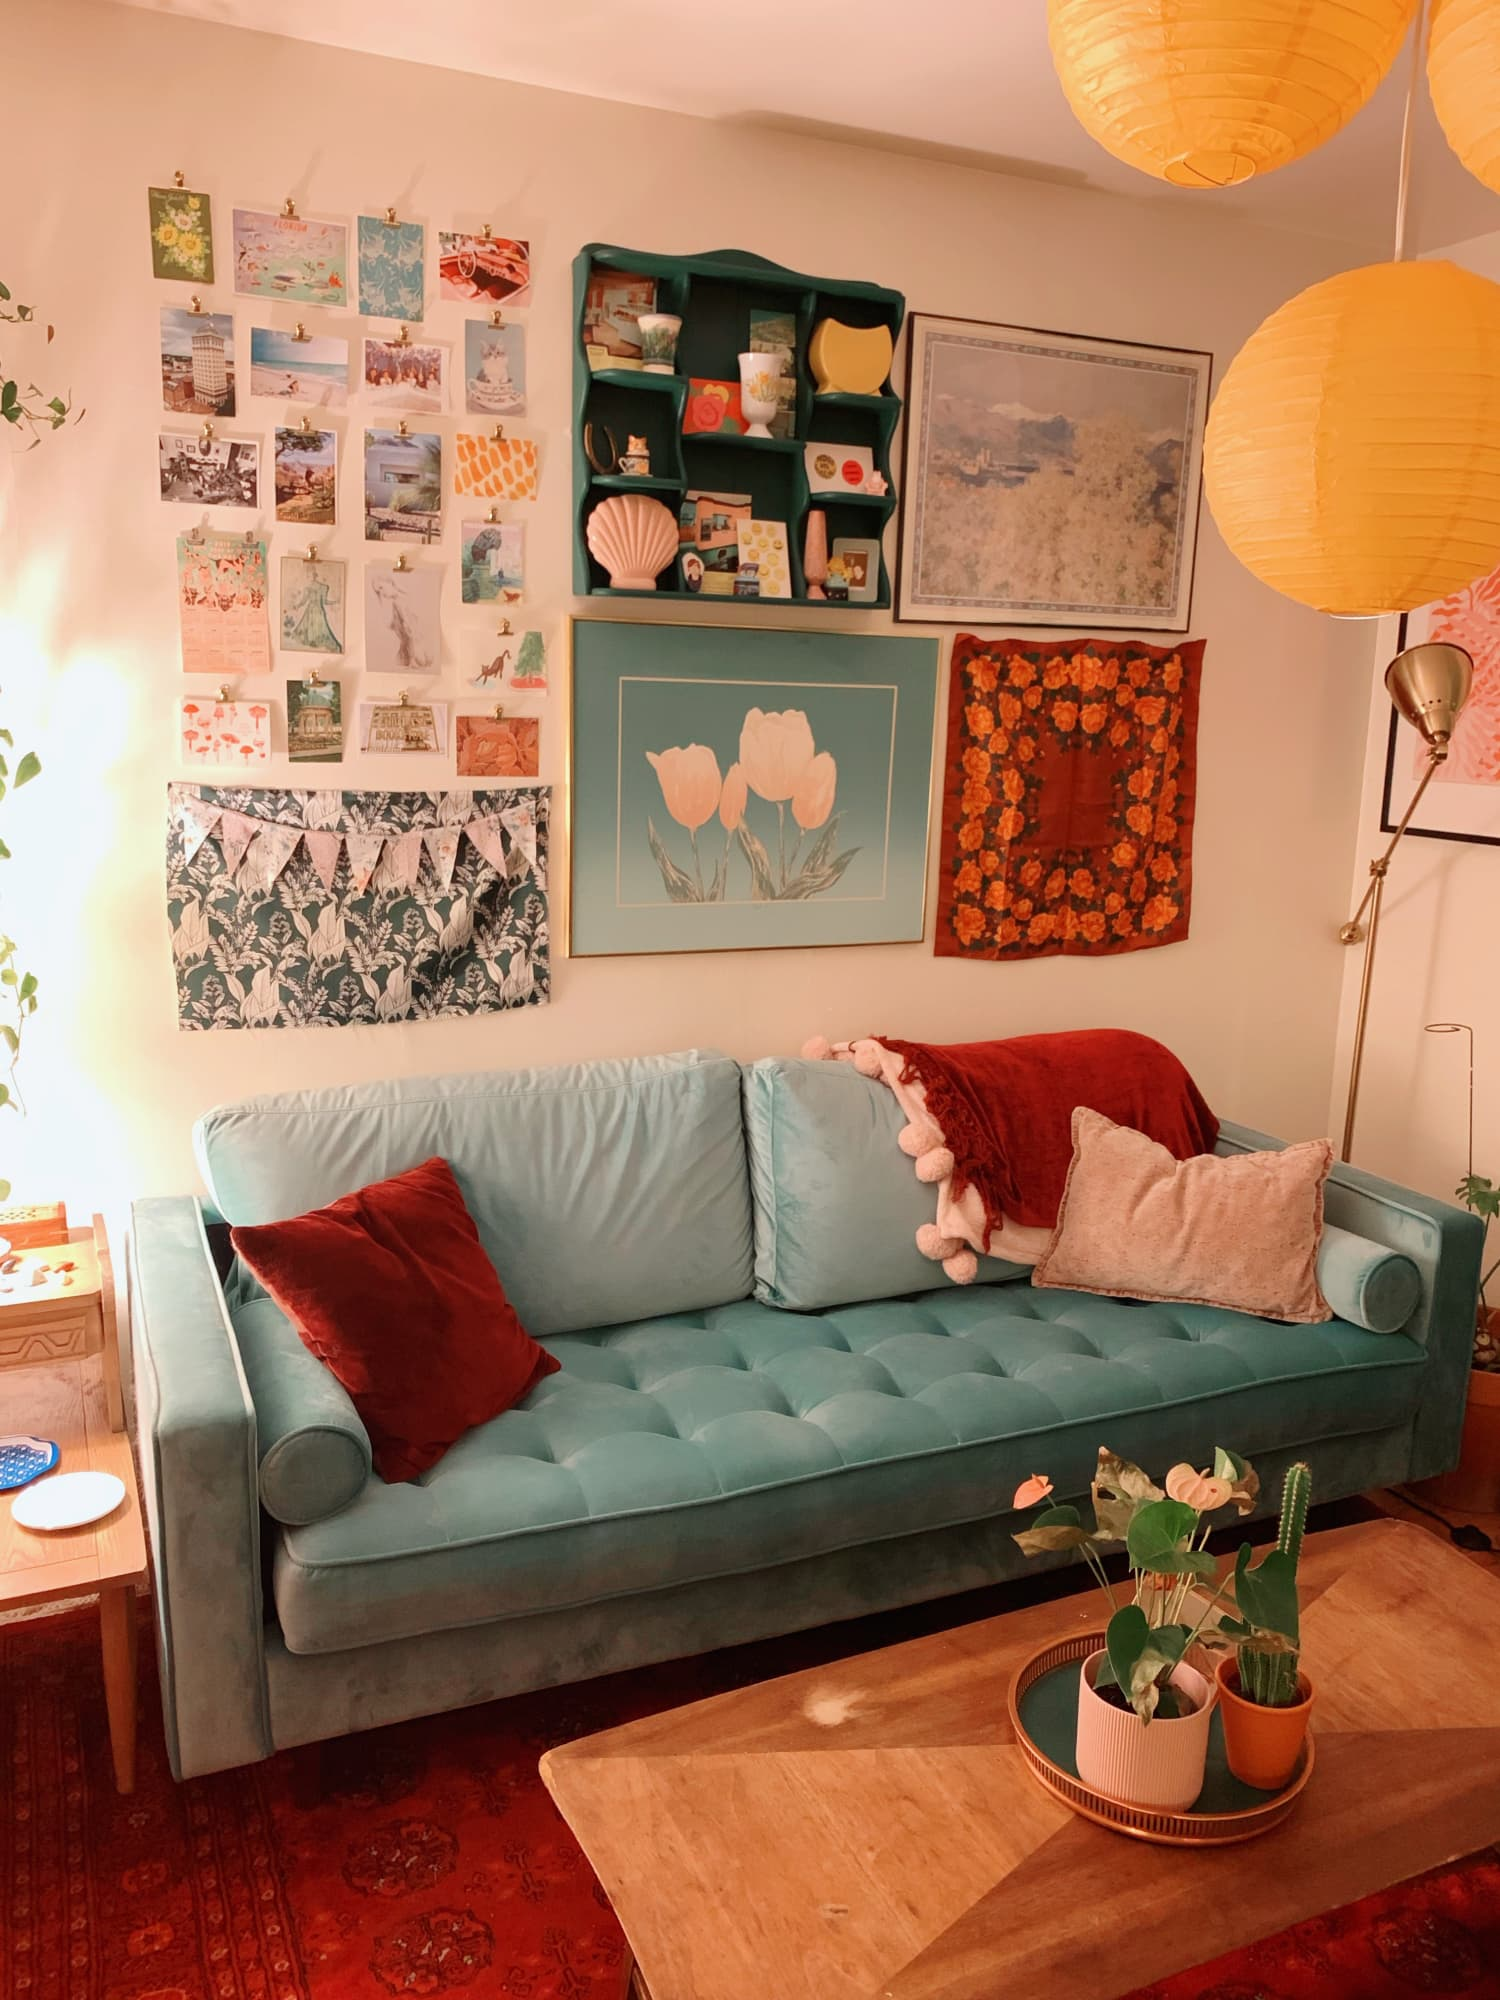 A Studio Apartment Didn't Come With a Kitchen, So This Renter Turned a Closet into One